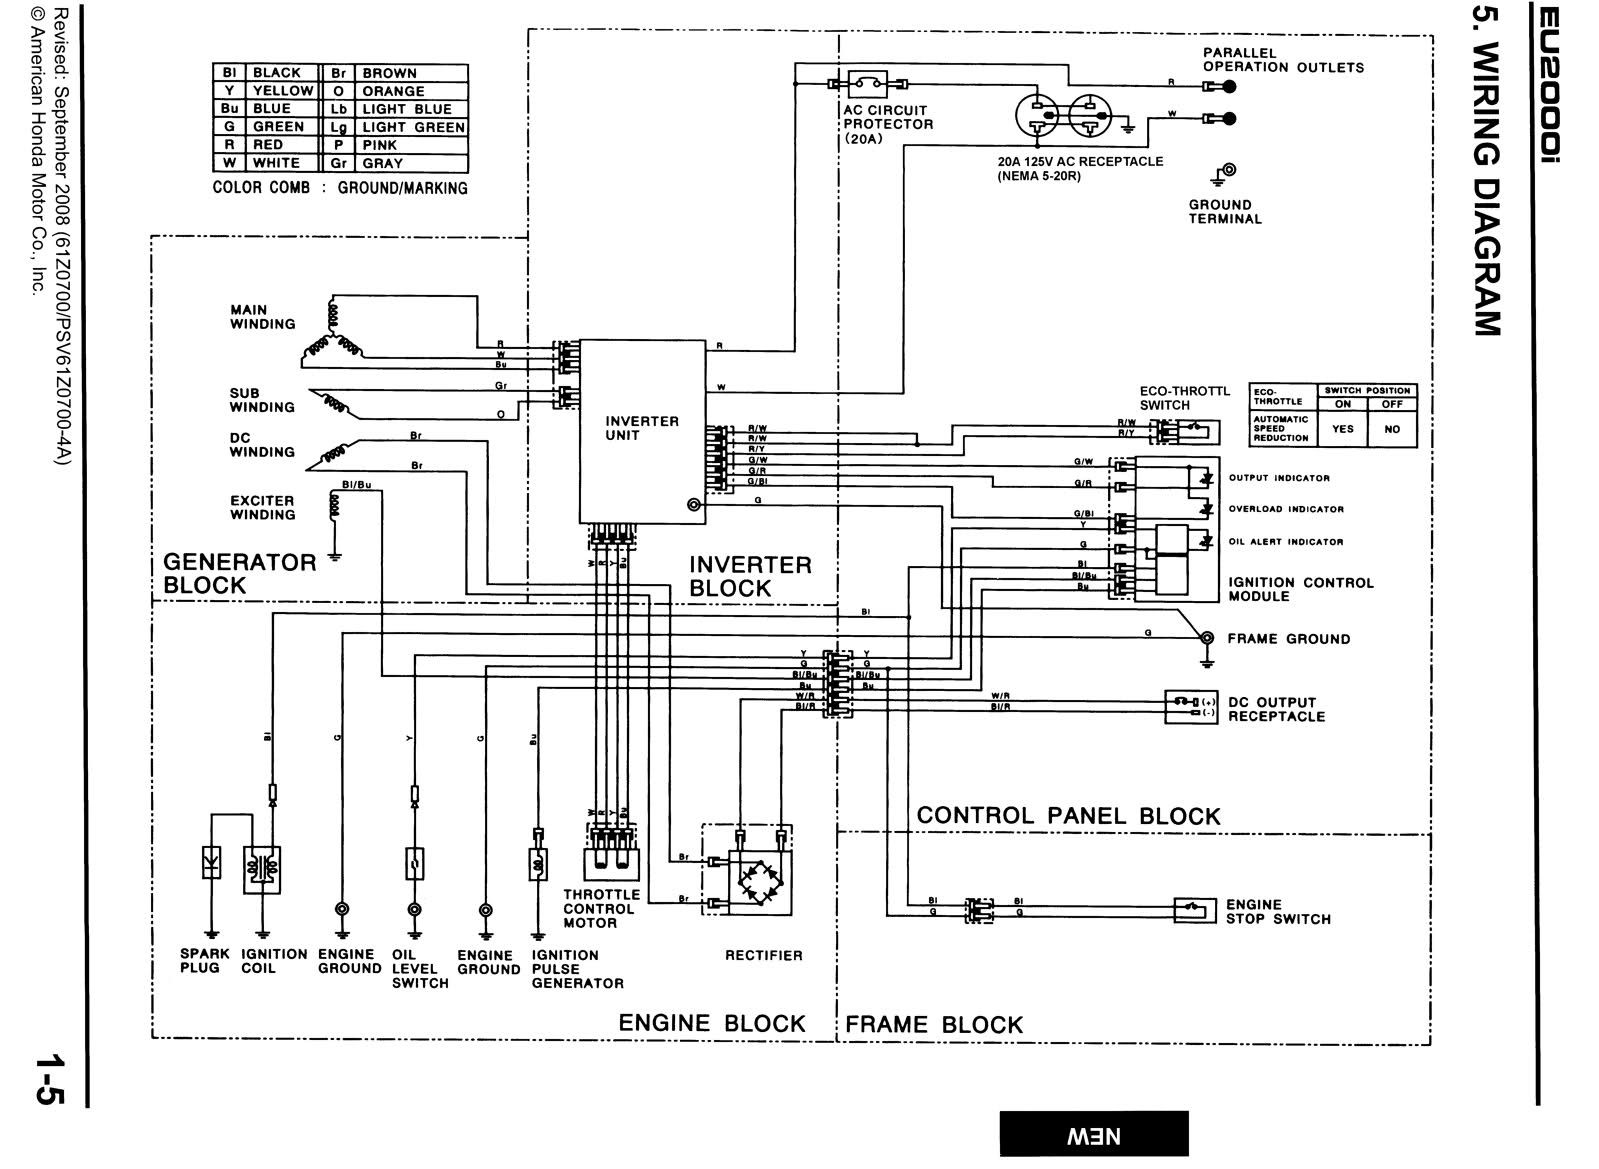 hight resolution of honda rv generator wiring schematic wiring diagram metawiring diagram for honda generator wiring diagram expert honda